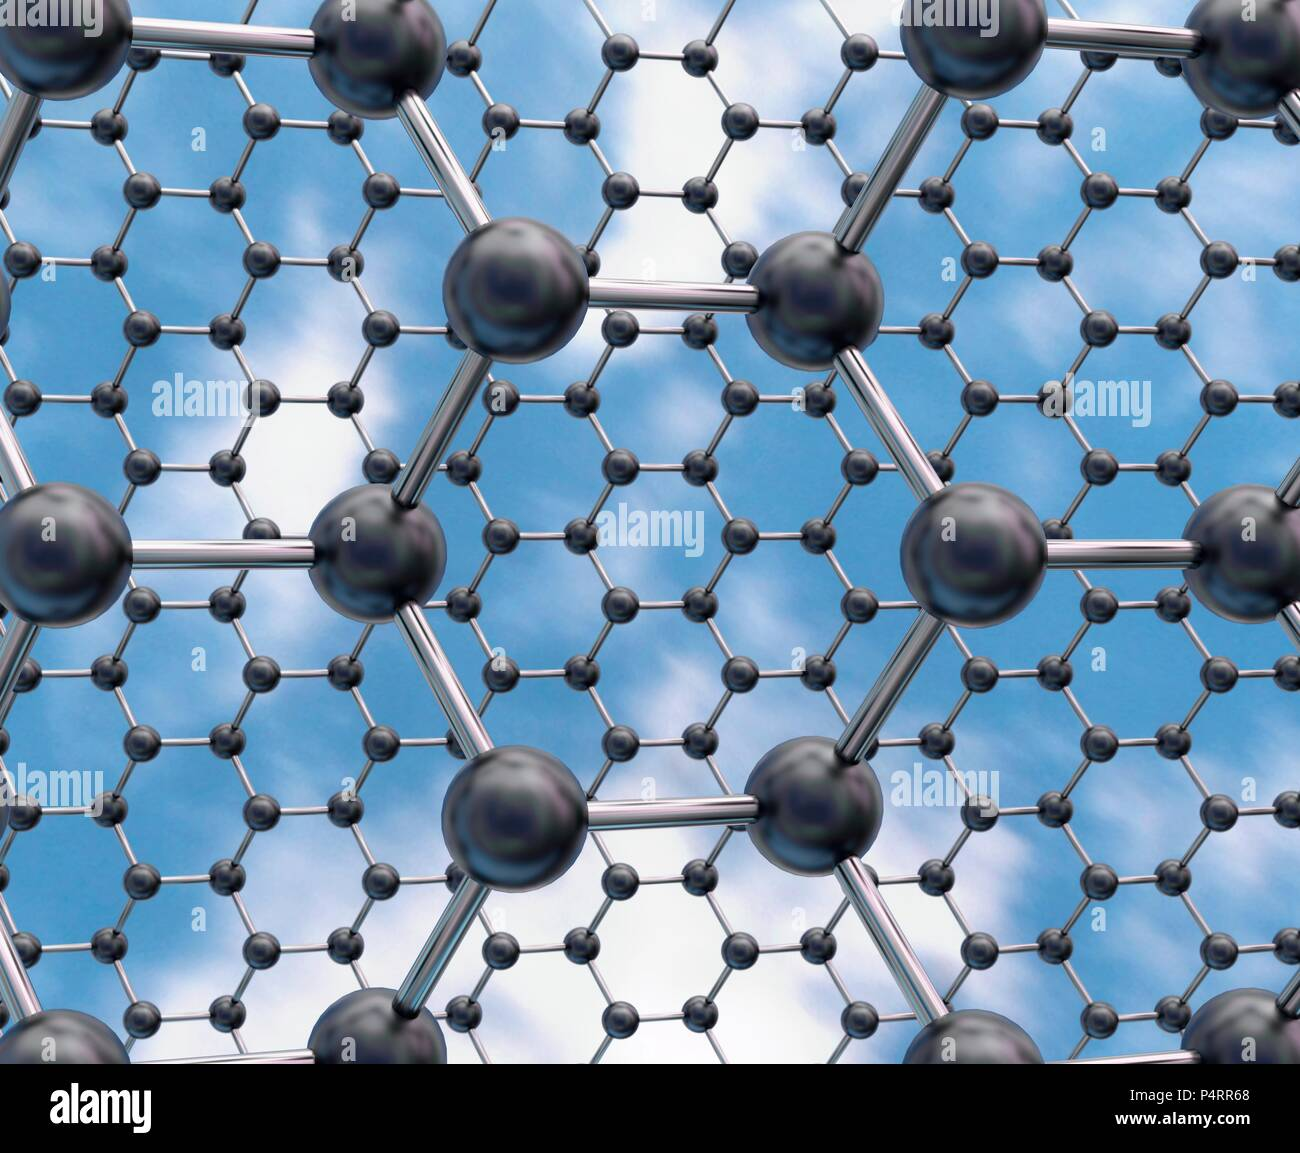 Computer illustration of a molecular model of two sheets of stanene showing the low buckled structure that is predicted from density functional theory (DFT) calculations. Stanene has a similar honeycomb structure to graphene but is composed of tin atoms. With the addition of fluorine atoms, it is thought that it can achieve 100% efficiency as an electrical conductor. The first fabrication of stanene was achieved in August 2015, by researchers in America and China. Stock Photo